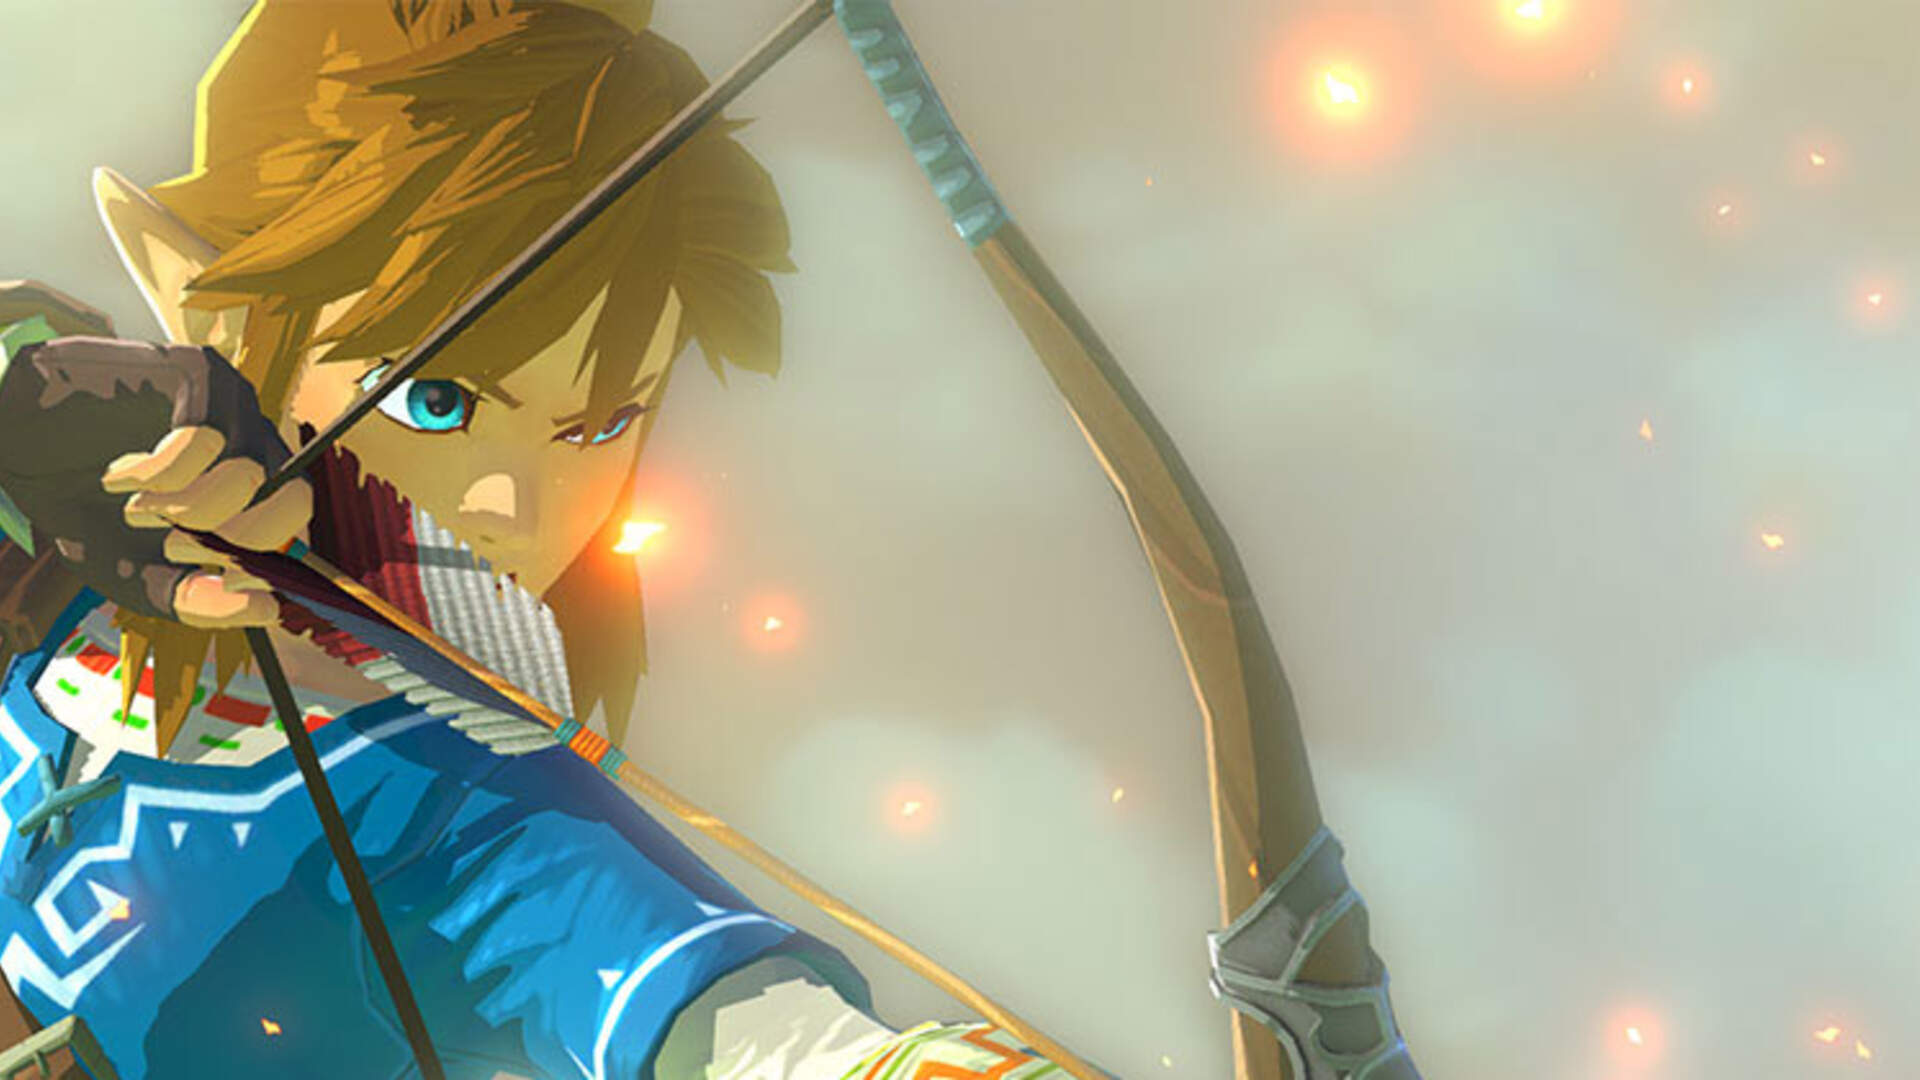 2015 in Preview: Will Nintendo's Wii U Ever Be Part of the Conversation?